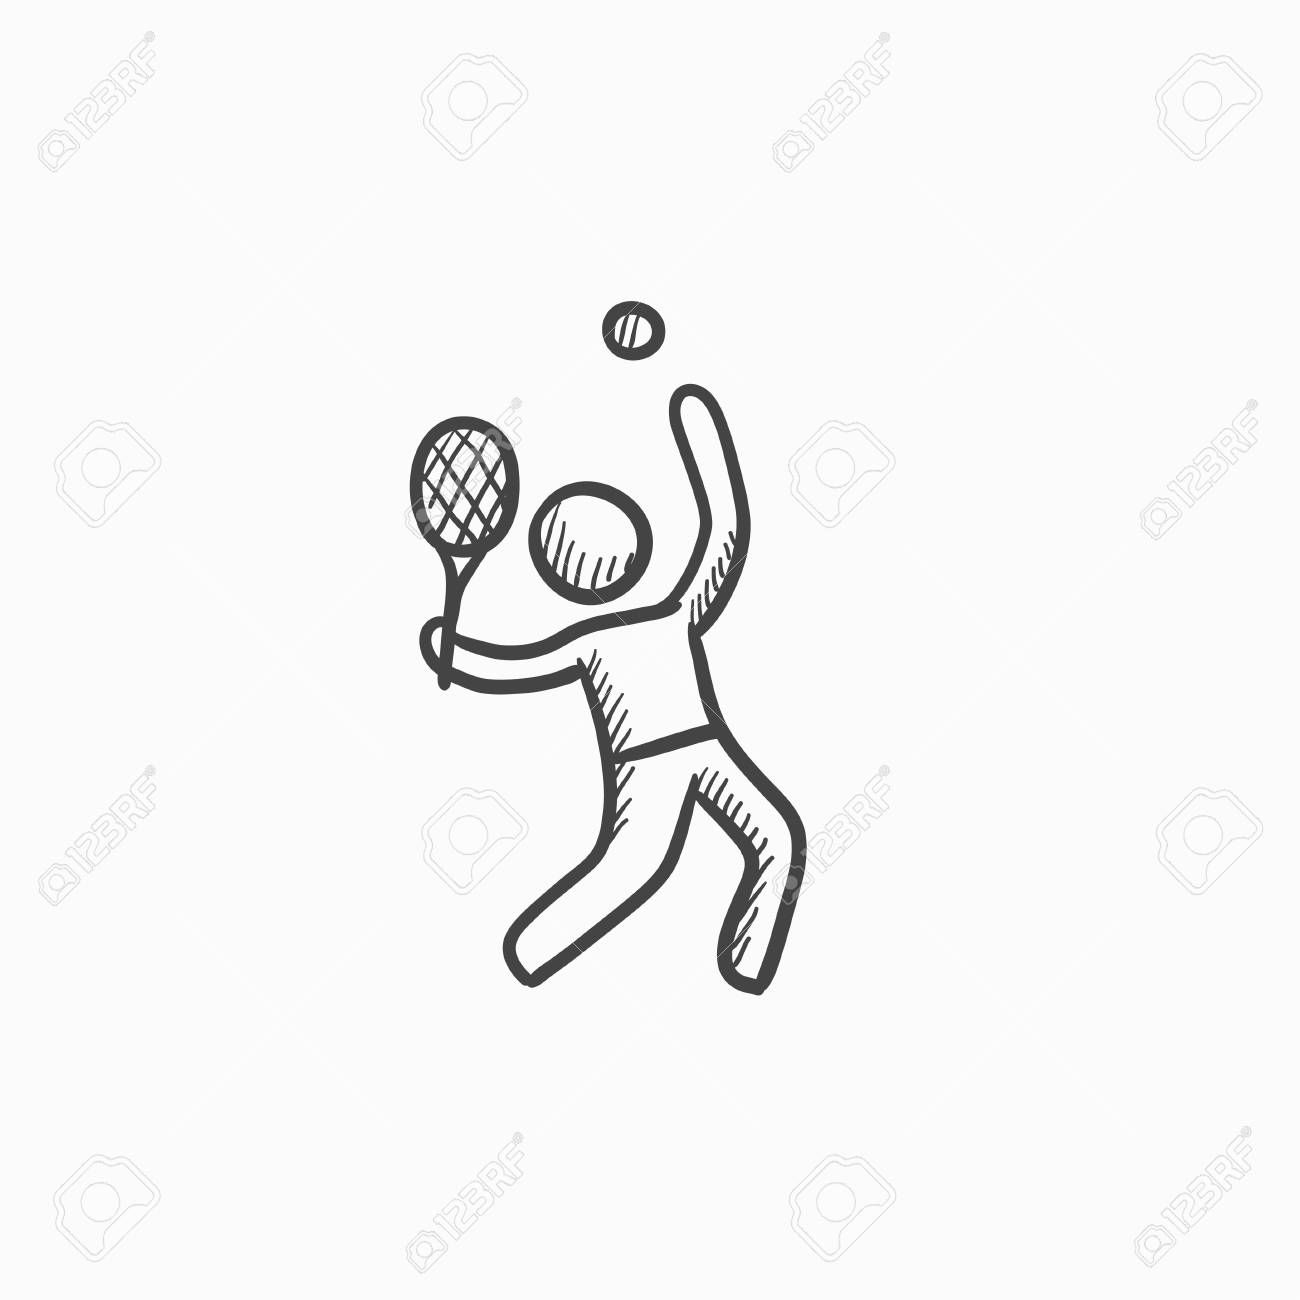 Man Playing Big Tennis Vector Sketch Icon Isolated On Background Hand Drawn Man Playing Big Tennis Icon Man Playing Big Tennis Sketch Icon For Tennis Tekenen